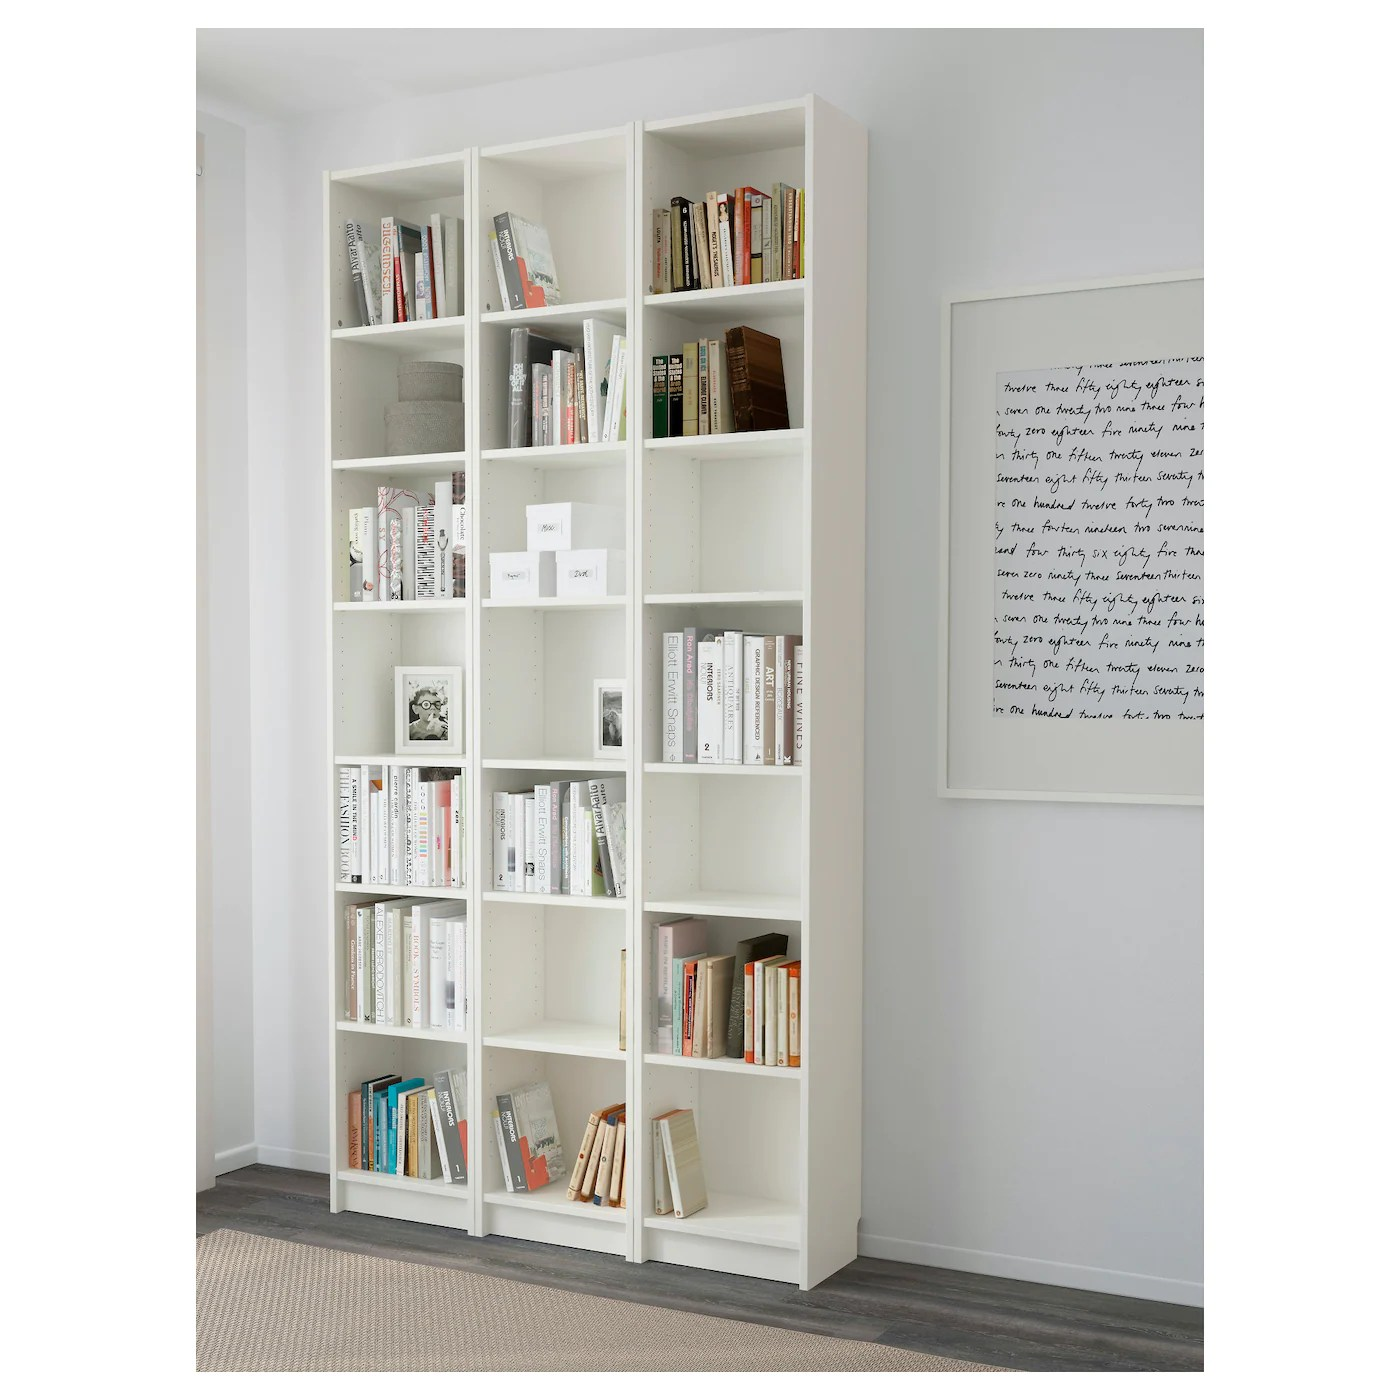 Ikea Billy Bookcase White Billy Bookcase White 120 X 237 X 28 Cm Ikea